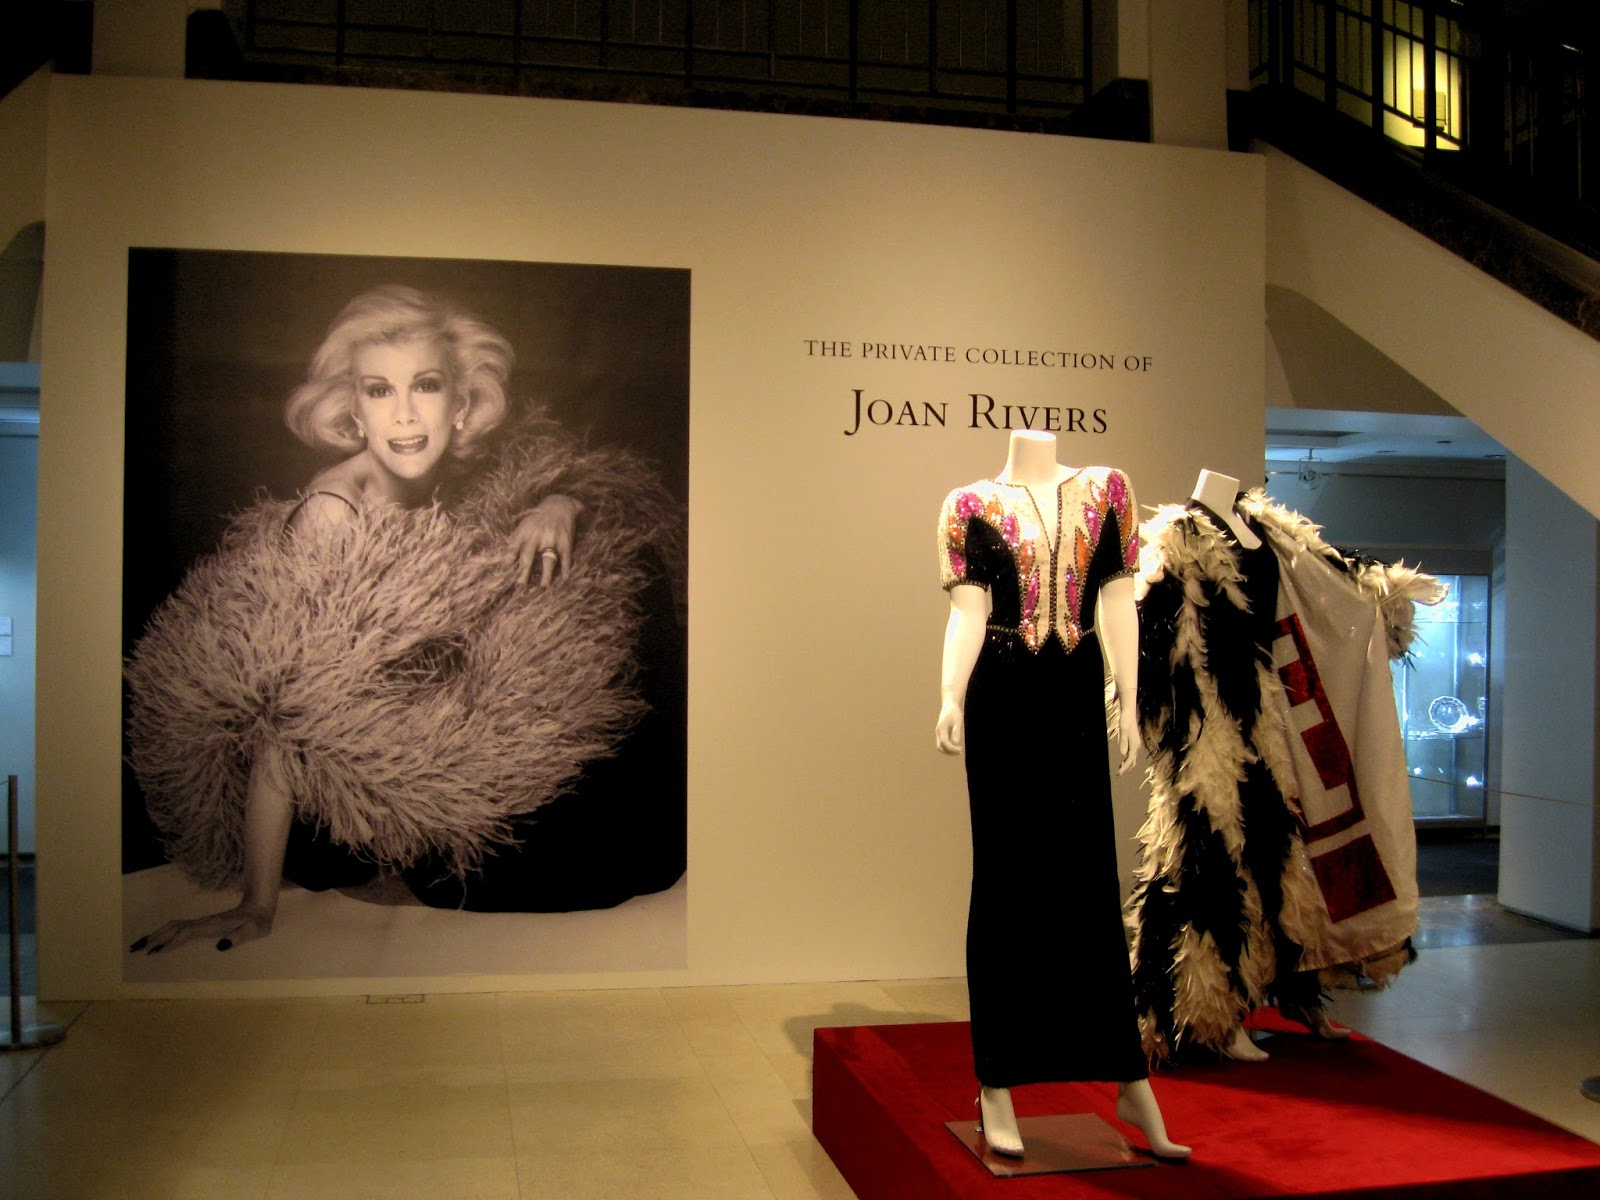 Joan Rivers' Private Collection Beaded Black Cream Pink Gown and Feathered Coat with E! logo lining [photo/edit by sookietex]